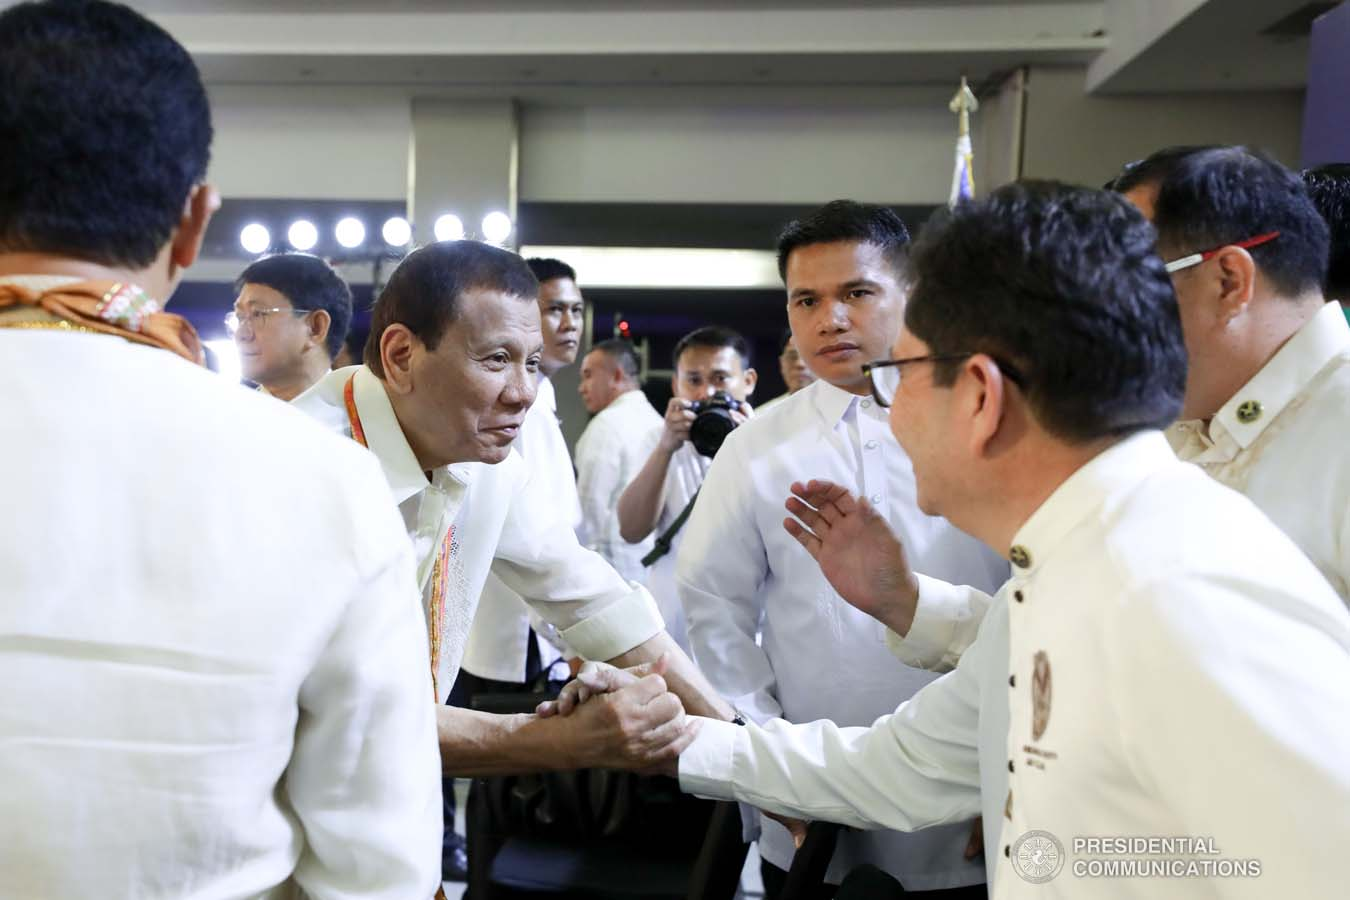 President Rodrigo Roa Duterte greets one of the guests during the thanksgiving gathering with The Fraternal Order of Eagles (TFOE) at the SMX Convention Center in Davao City on January 17, 2020. RICHARD MADELO/PRESIDENTIAL PHOTO